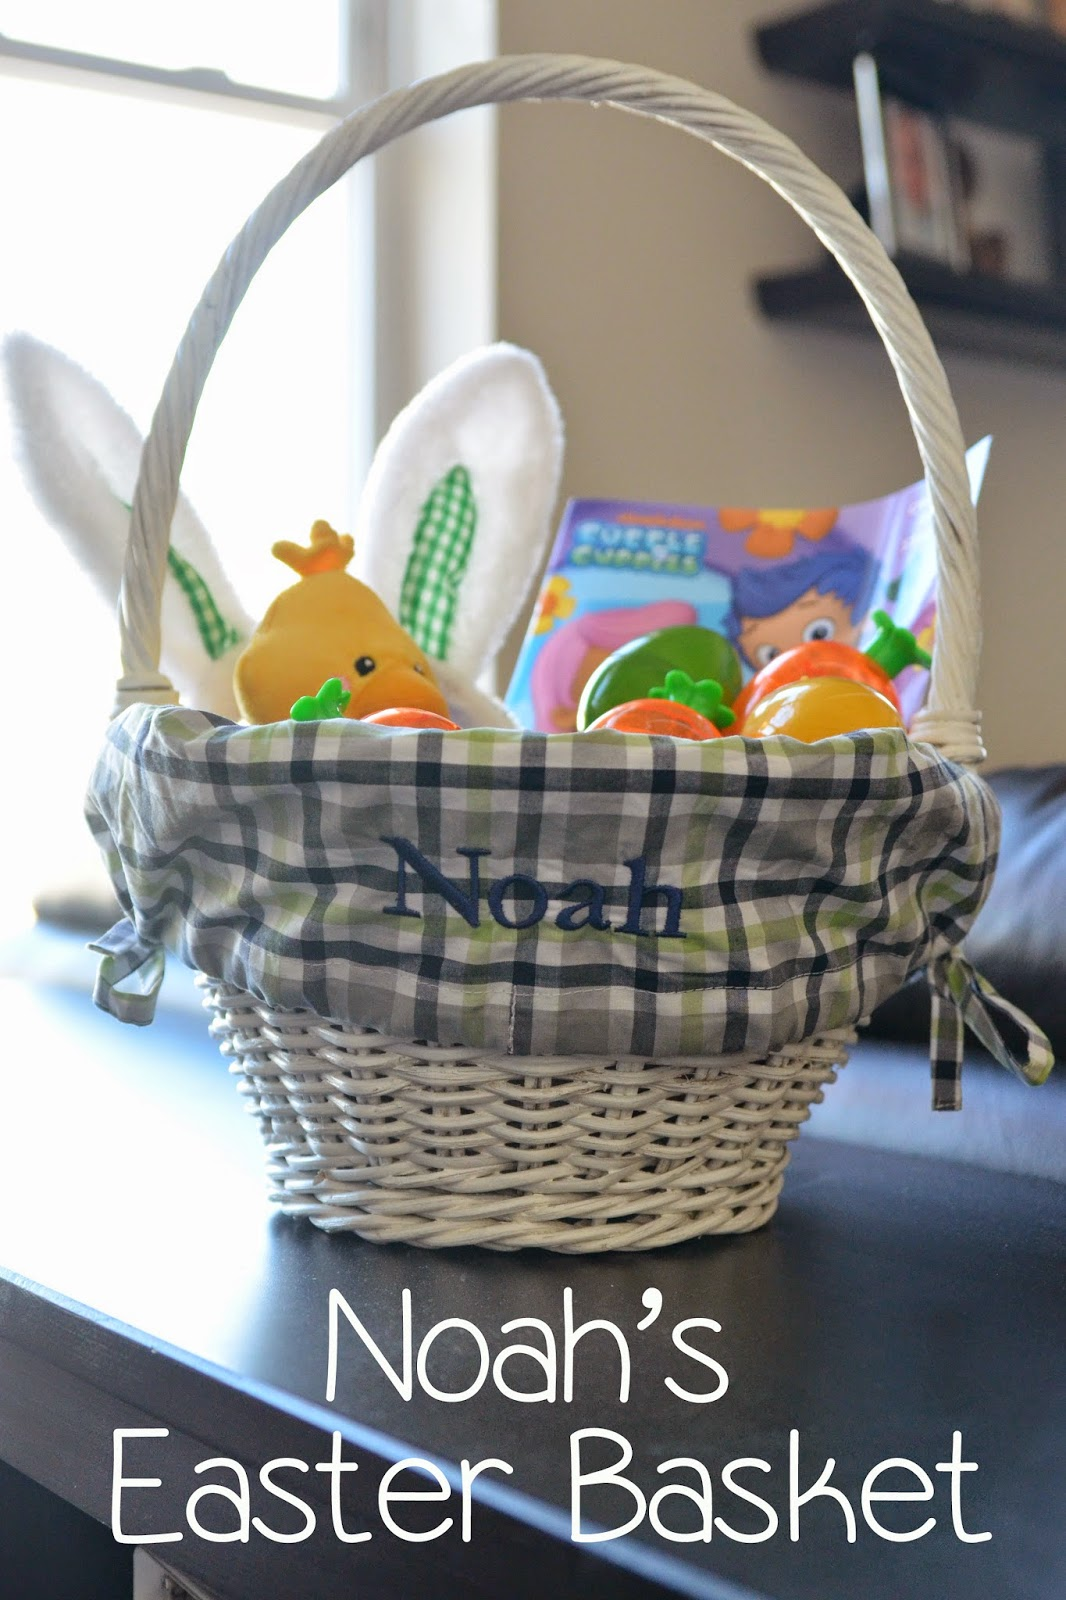 The adventure starts here noahs easter basket last year we celebrated noahs first easter both sets of grandparents got noah easter baskets filled with goodies since noah was only 4 12 months old negle Images